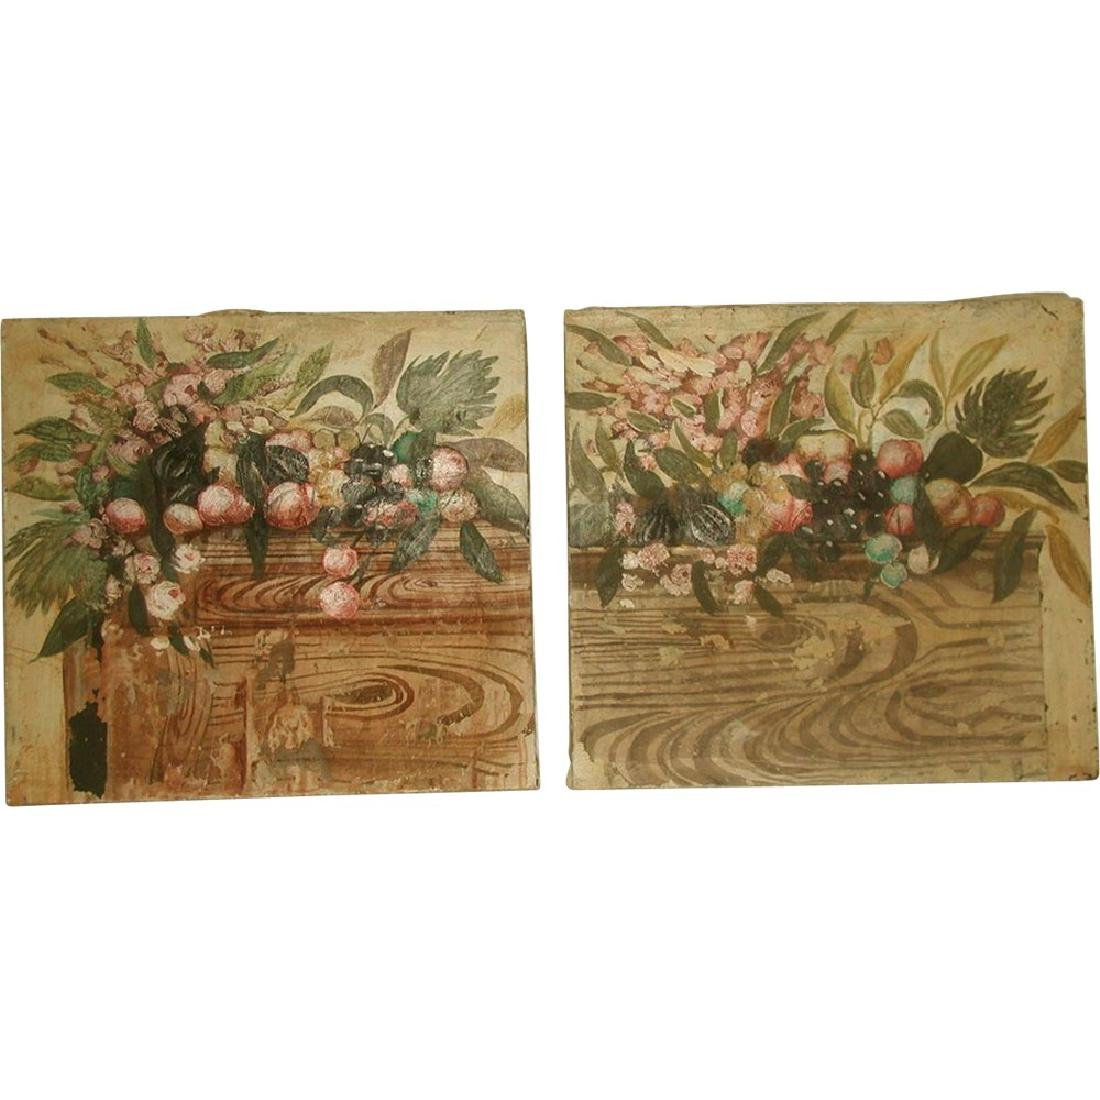 Matching Oil Paintings Unframed Pair On Canvas Early